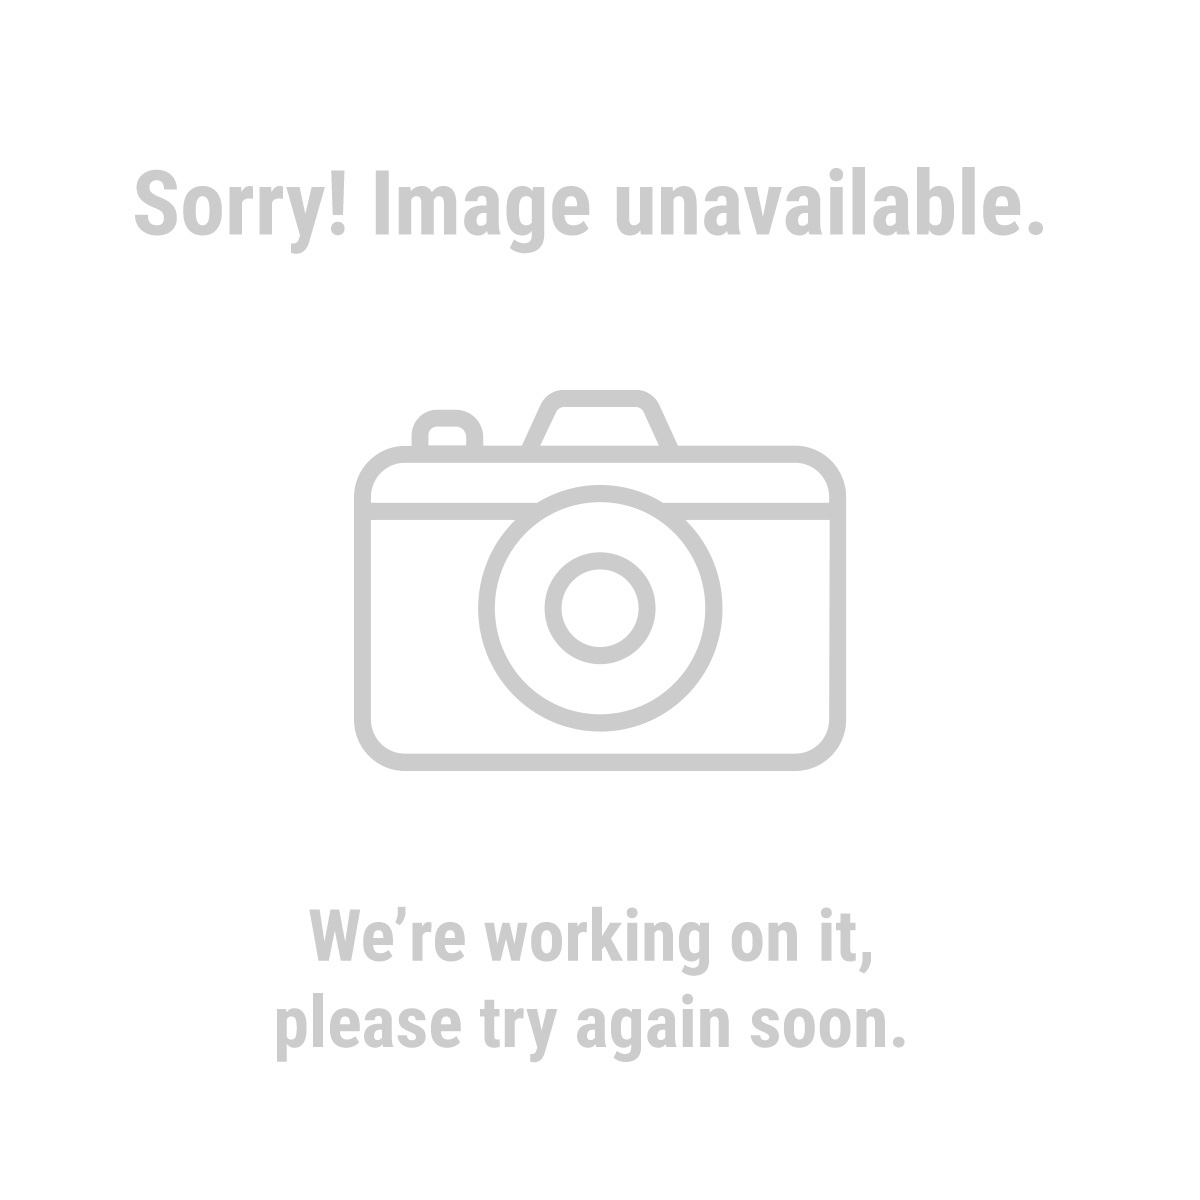 portable fish finder, Fish Finder